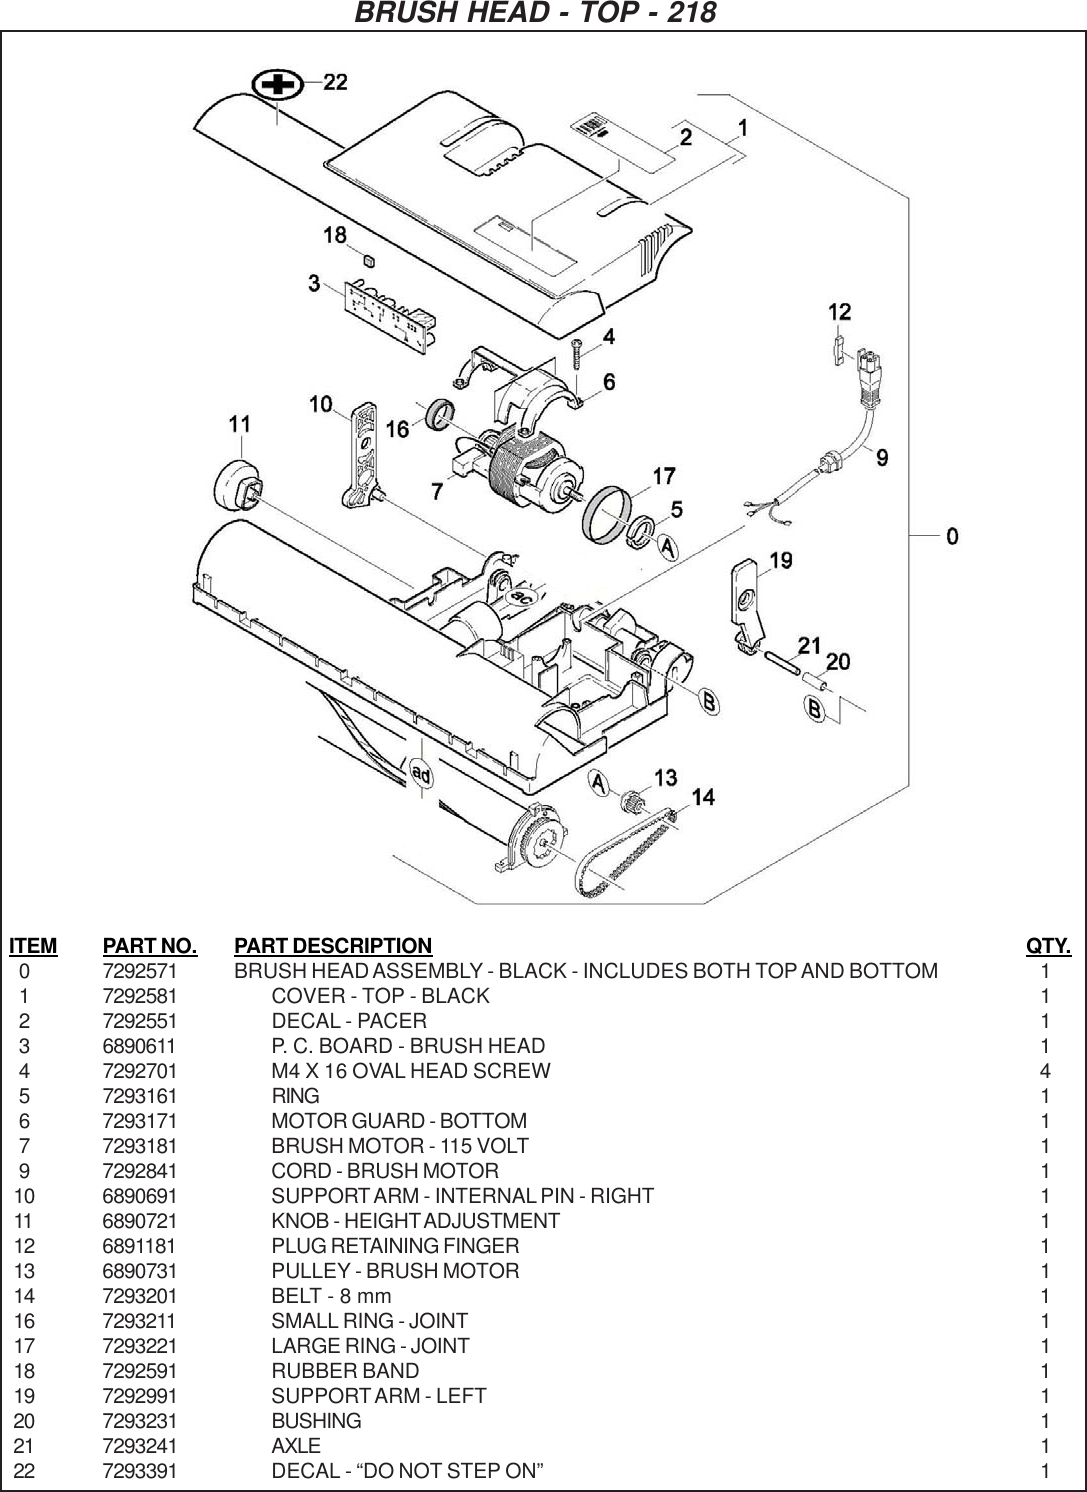 9097272 Pacer Dual Motor Illustrated Parts Book.pmd Nss